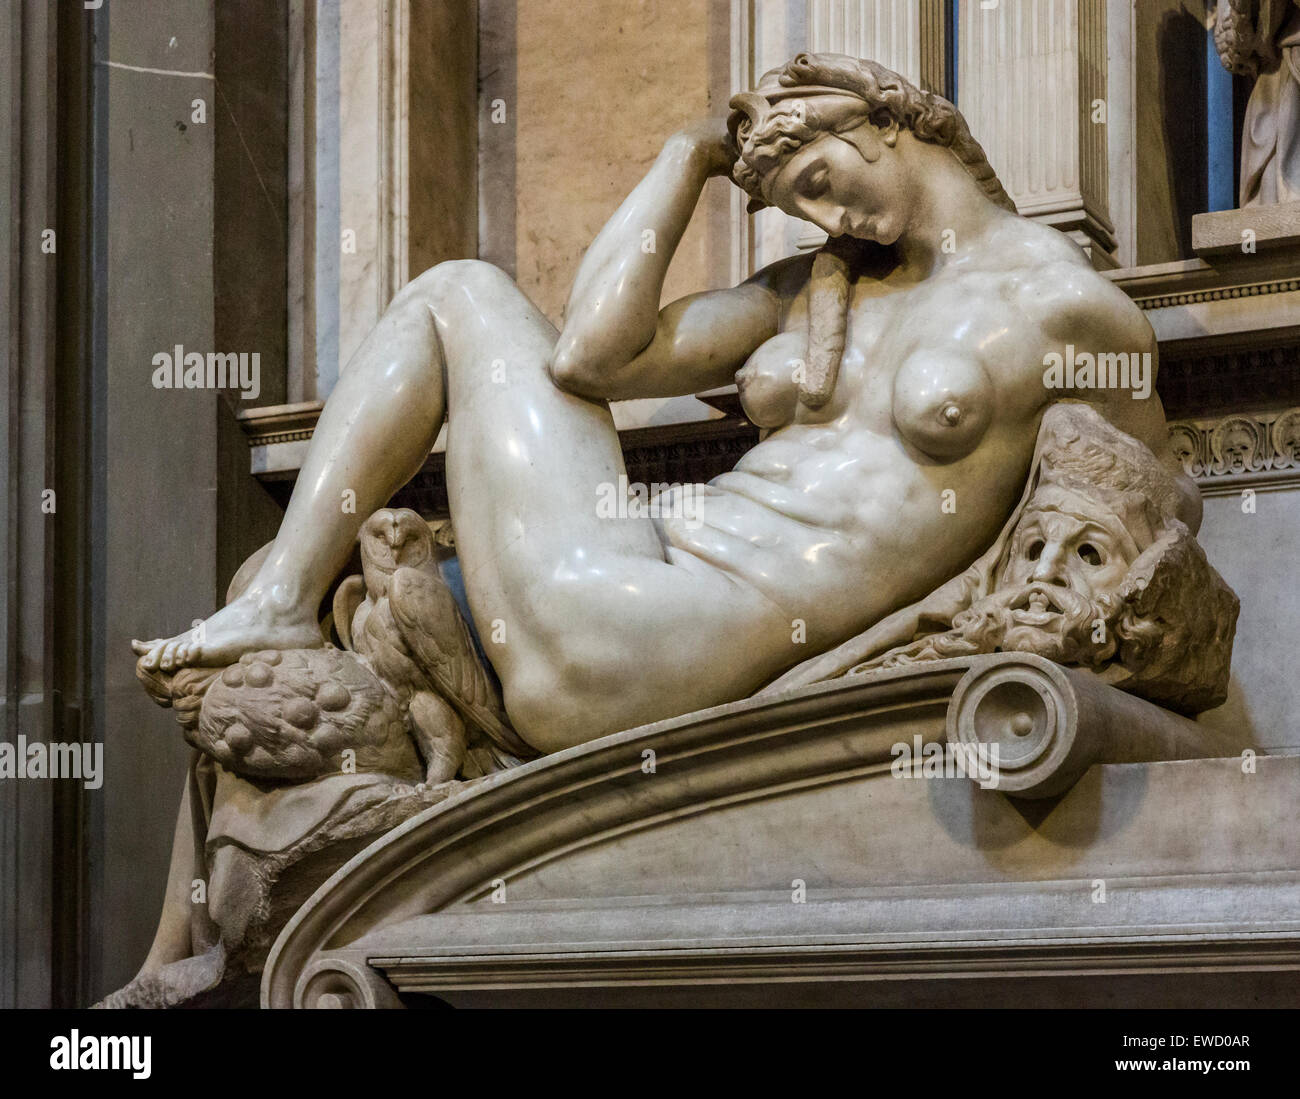 night sculpture by michelangelo new sacristy basilica of san night sculpture by michelangelo new sacristy basilica of san lorenzo florence